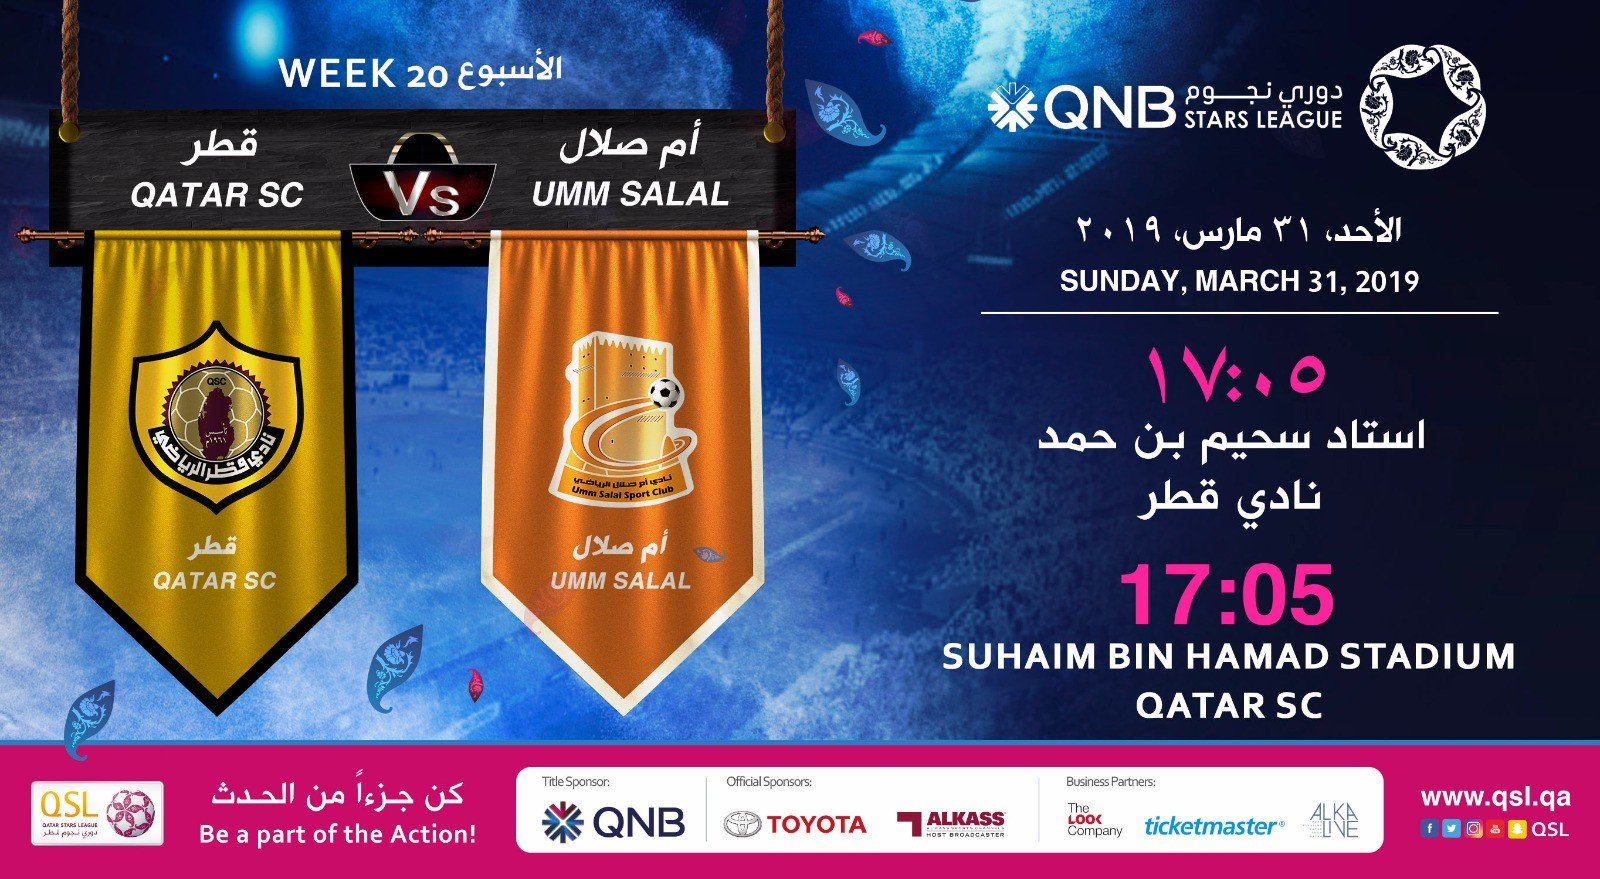 QNB Stars League Week 20 — Qatar SC vs Umm Salal